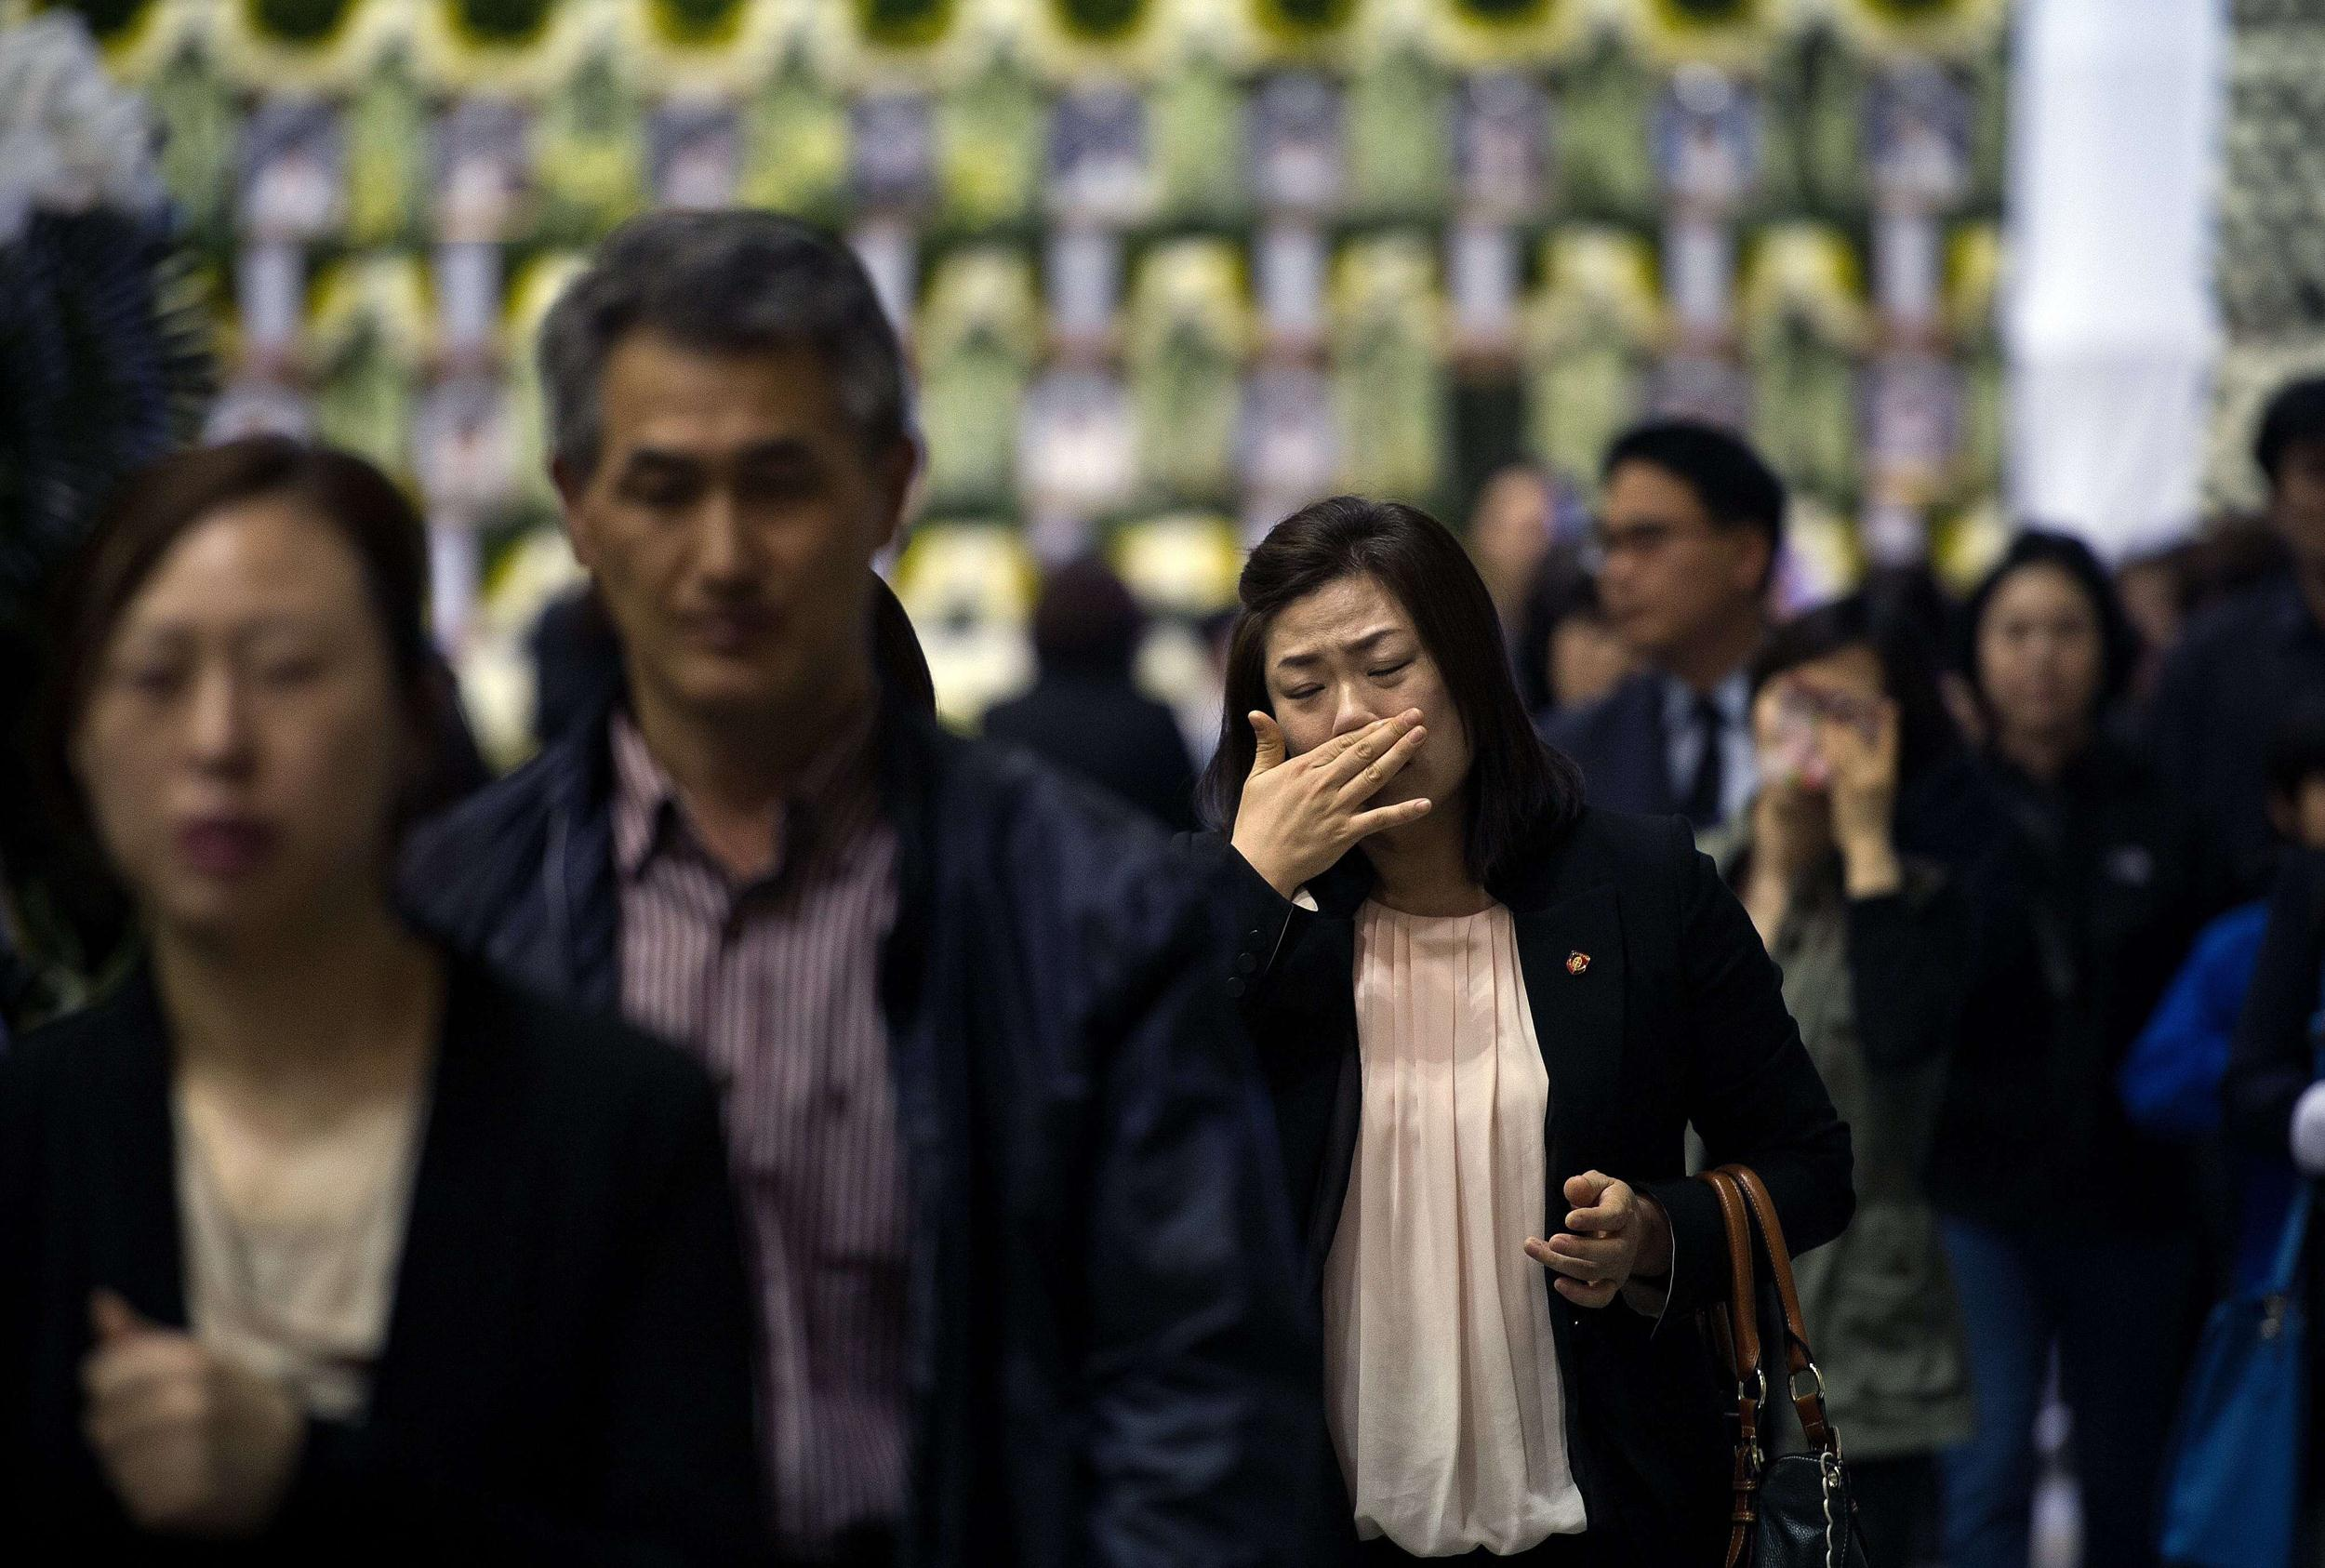 Image: Mourners attend a memorial for victims of the sunken South Korean ferry Sewol in Ansan